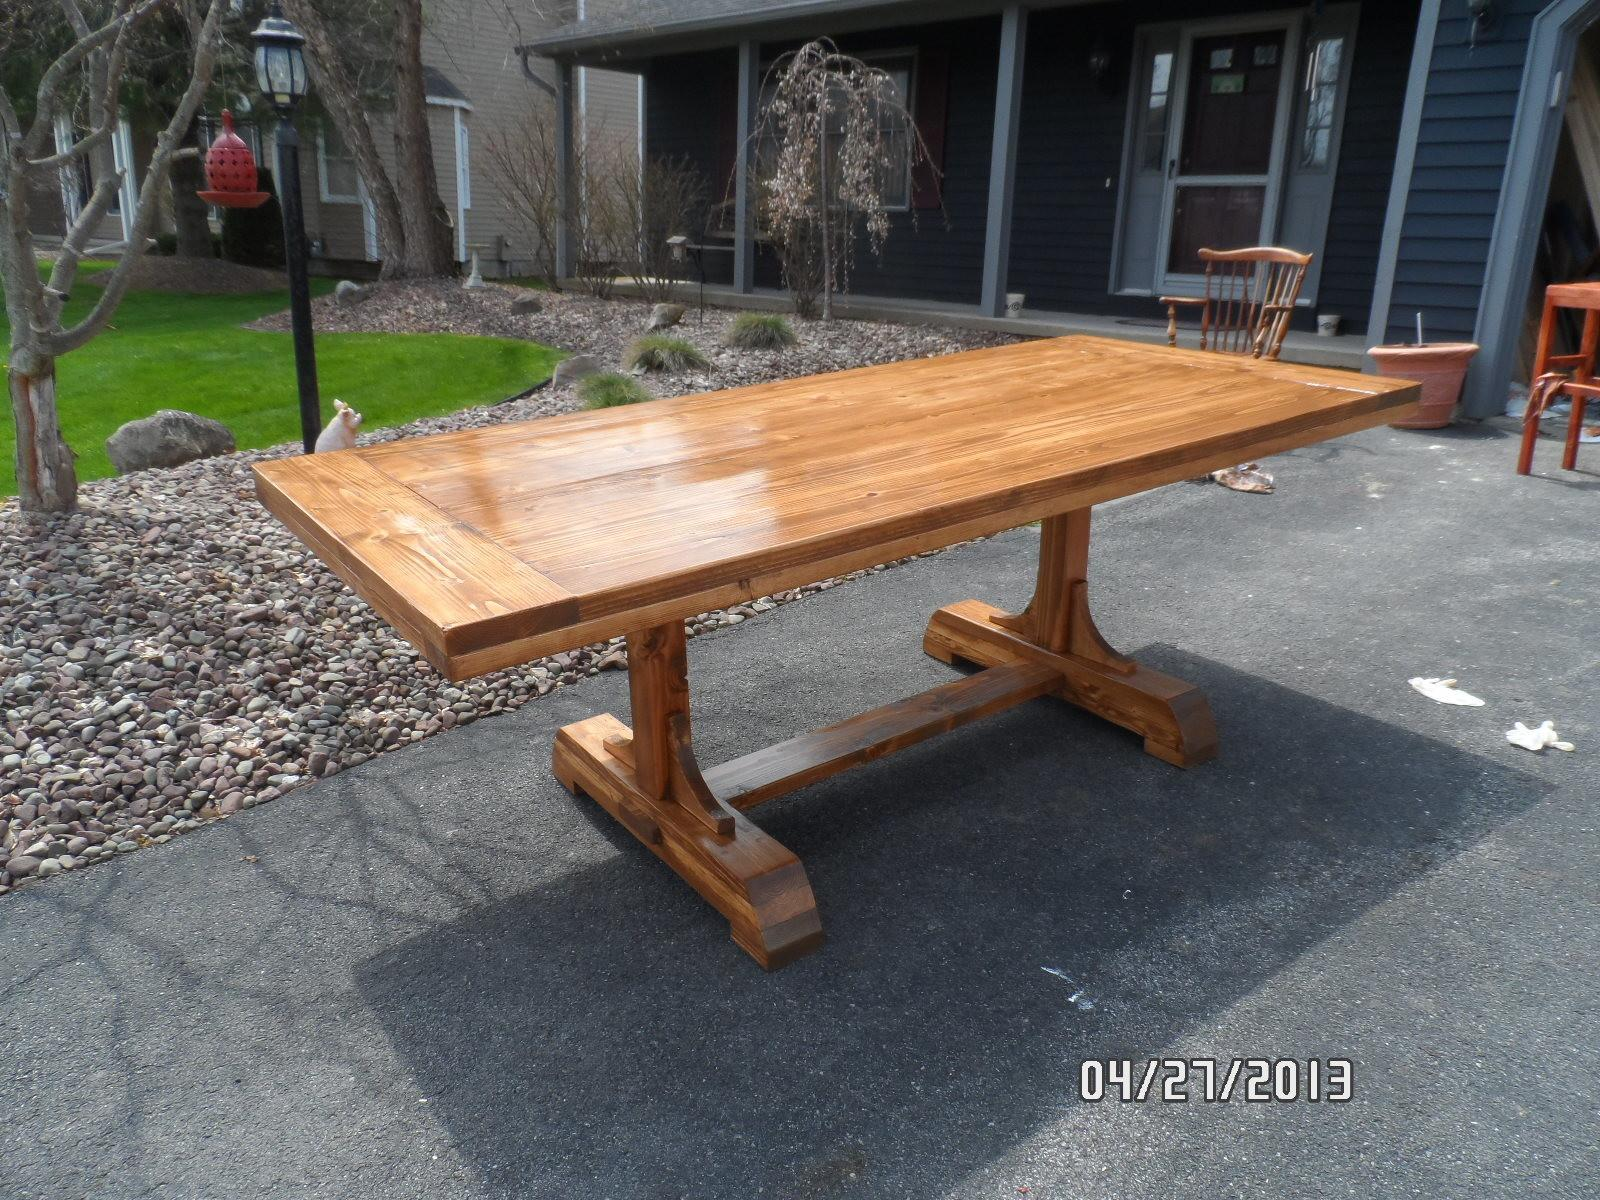 Build Plans Make Your Own Dining Table, Build Your Own Dining Room Table Plans